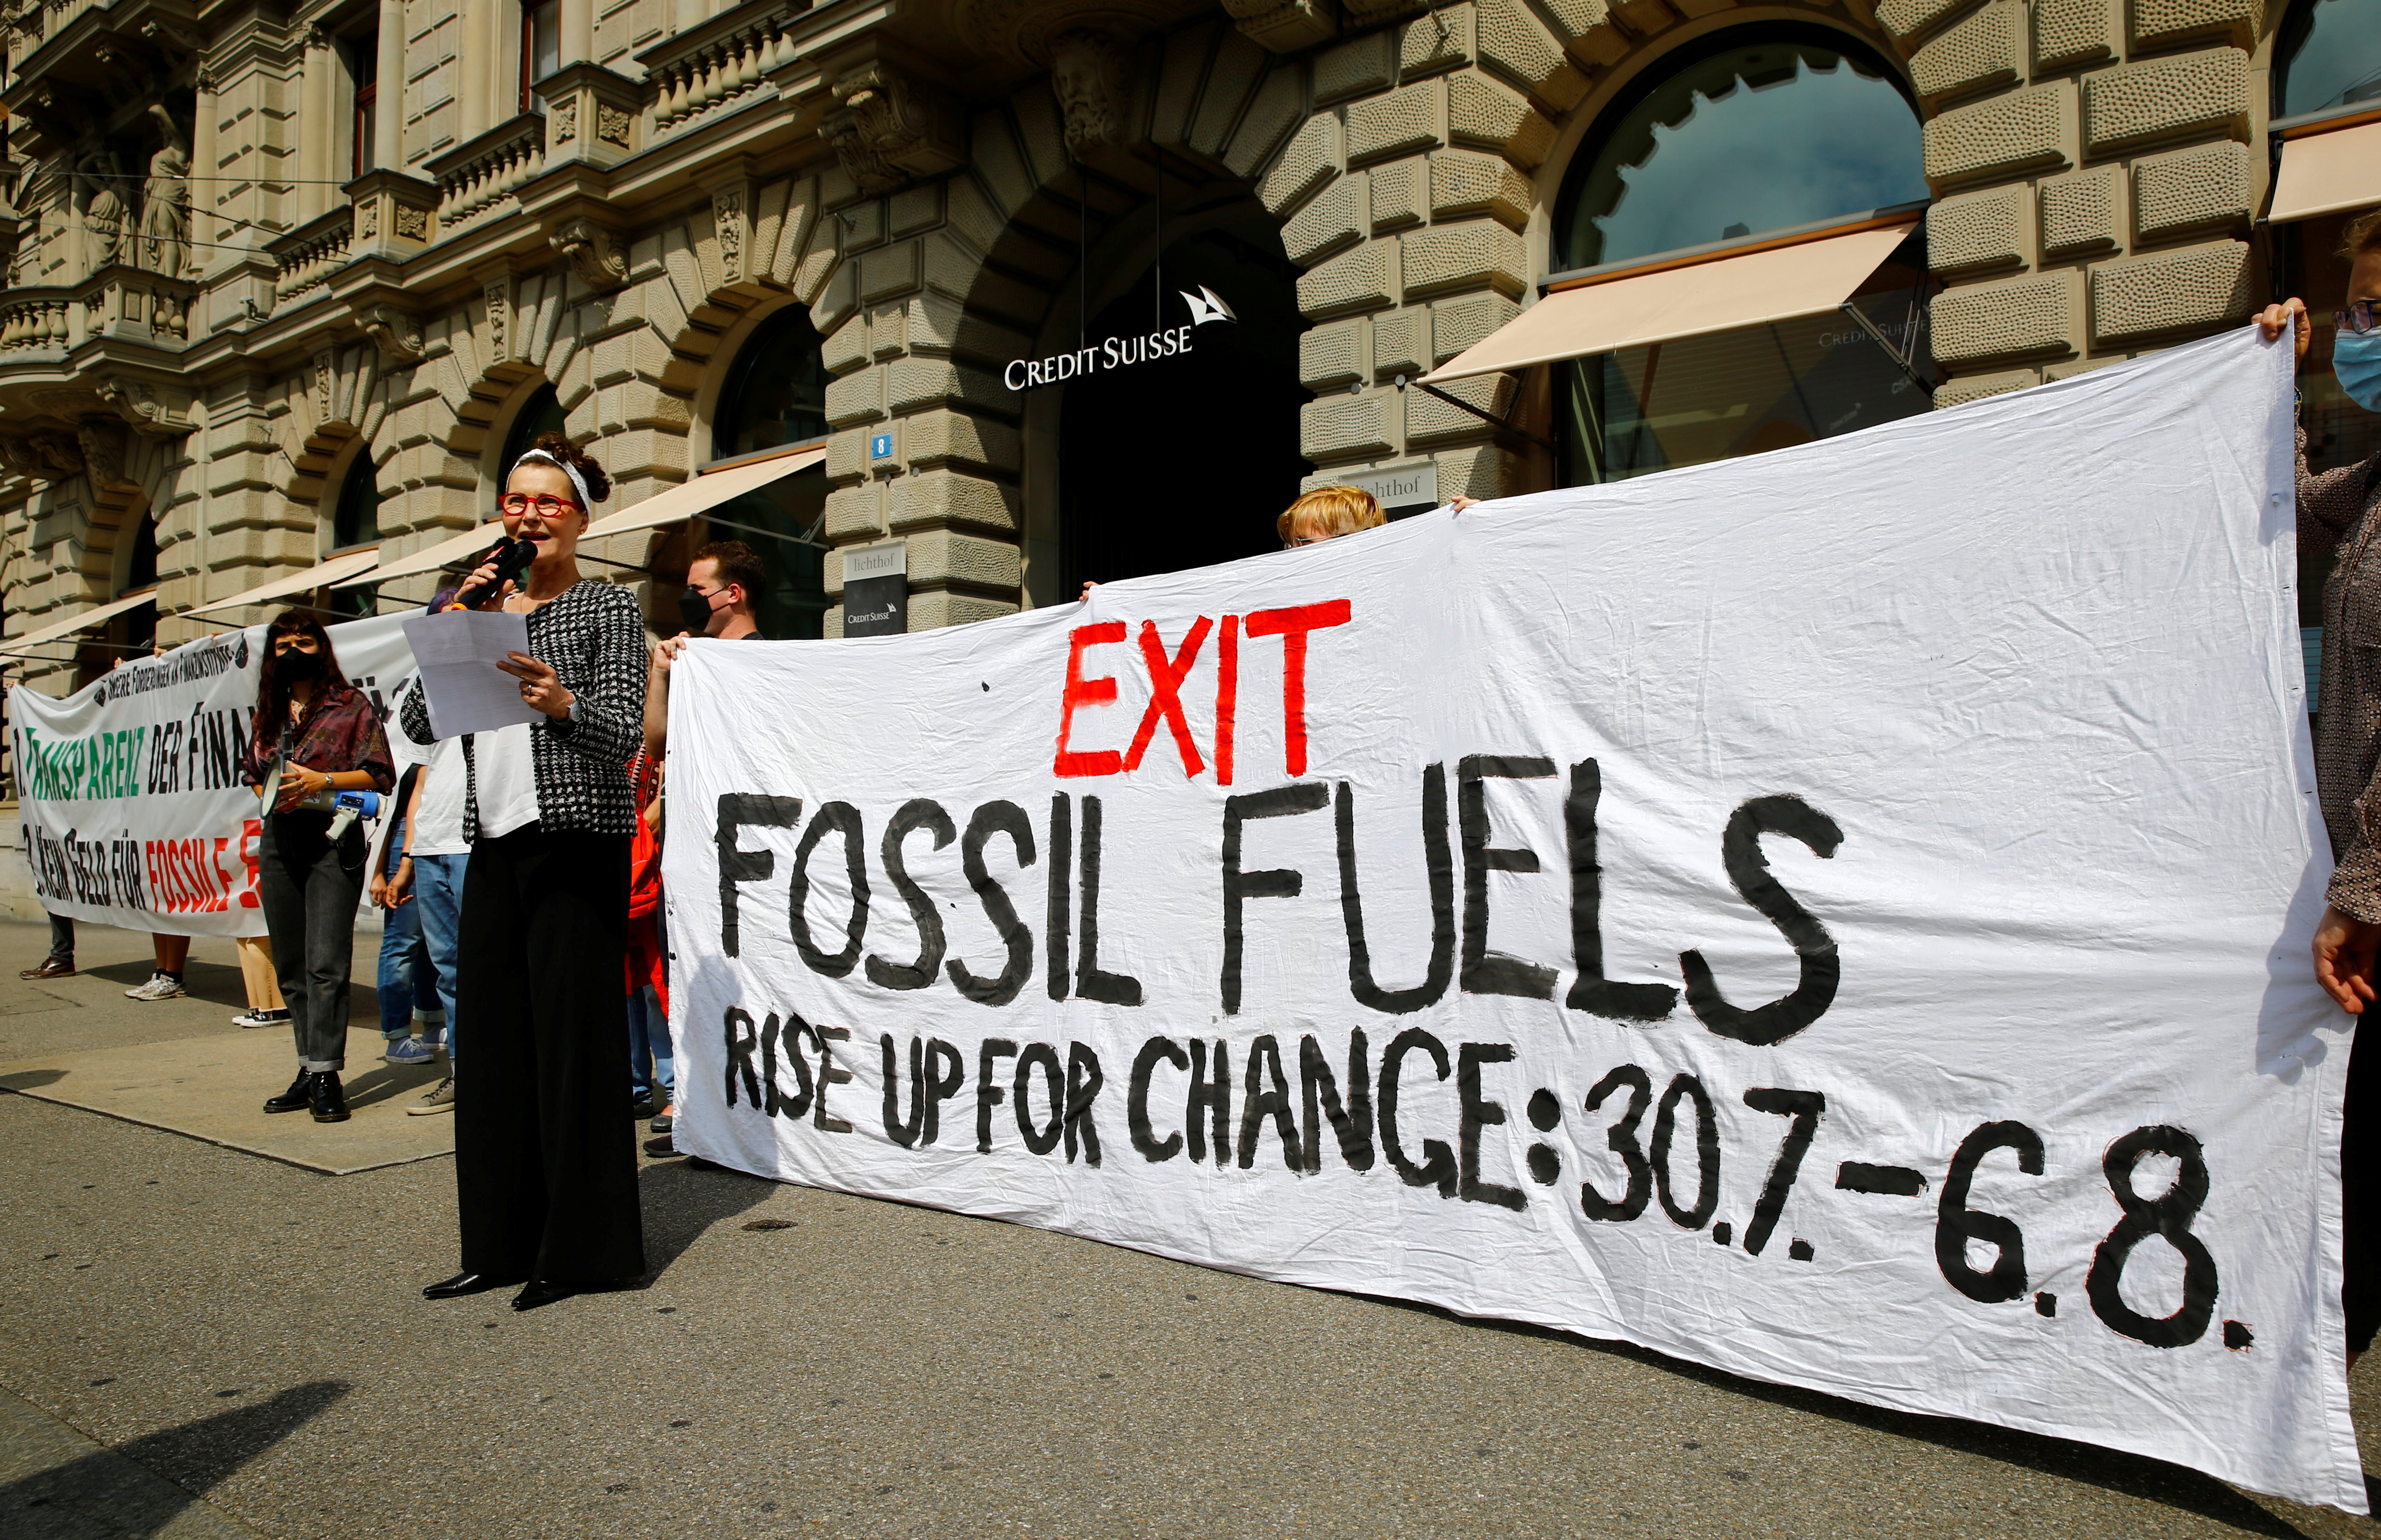 A woman, introduced as a representative of the Swiss bank Credit Suisse, speaks as climate activists of the 'Rise up for Change' coalition display a banner to protest in front of the bank's headquarters in Zurich, Switzerland, July 26, 2021. REUTERS/Arnd WIegmann